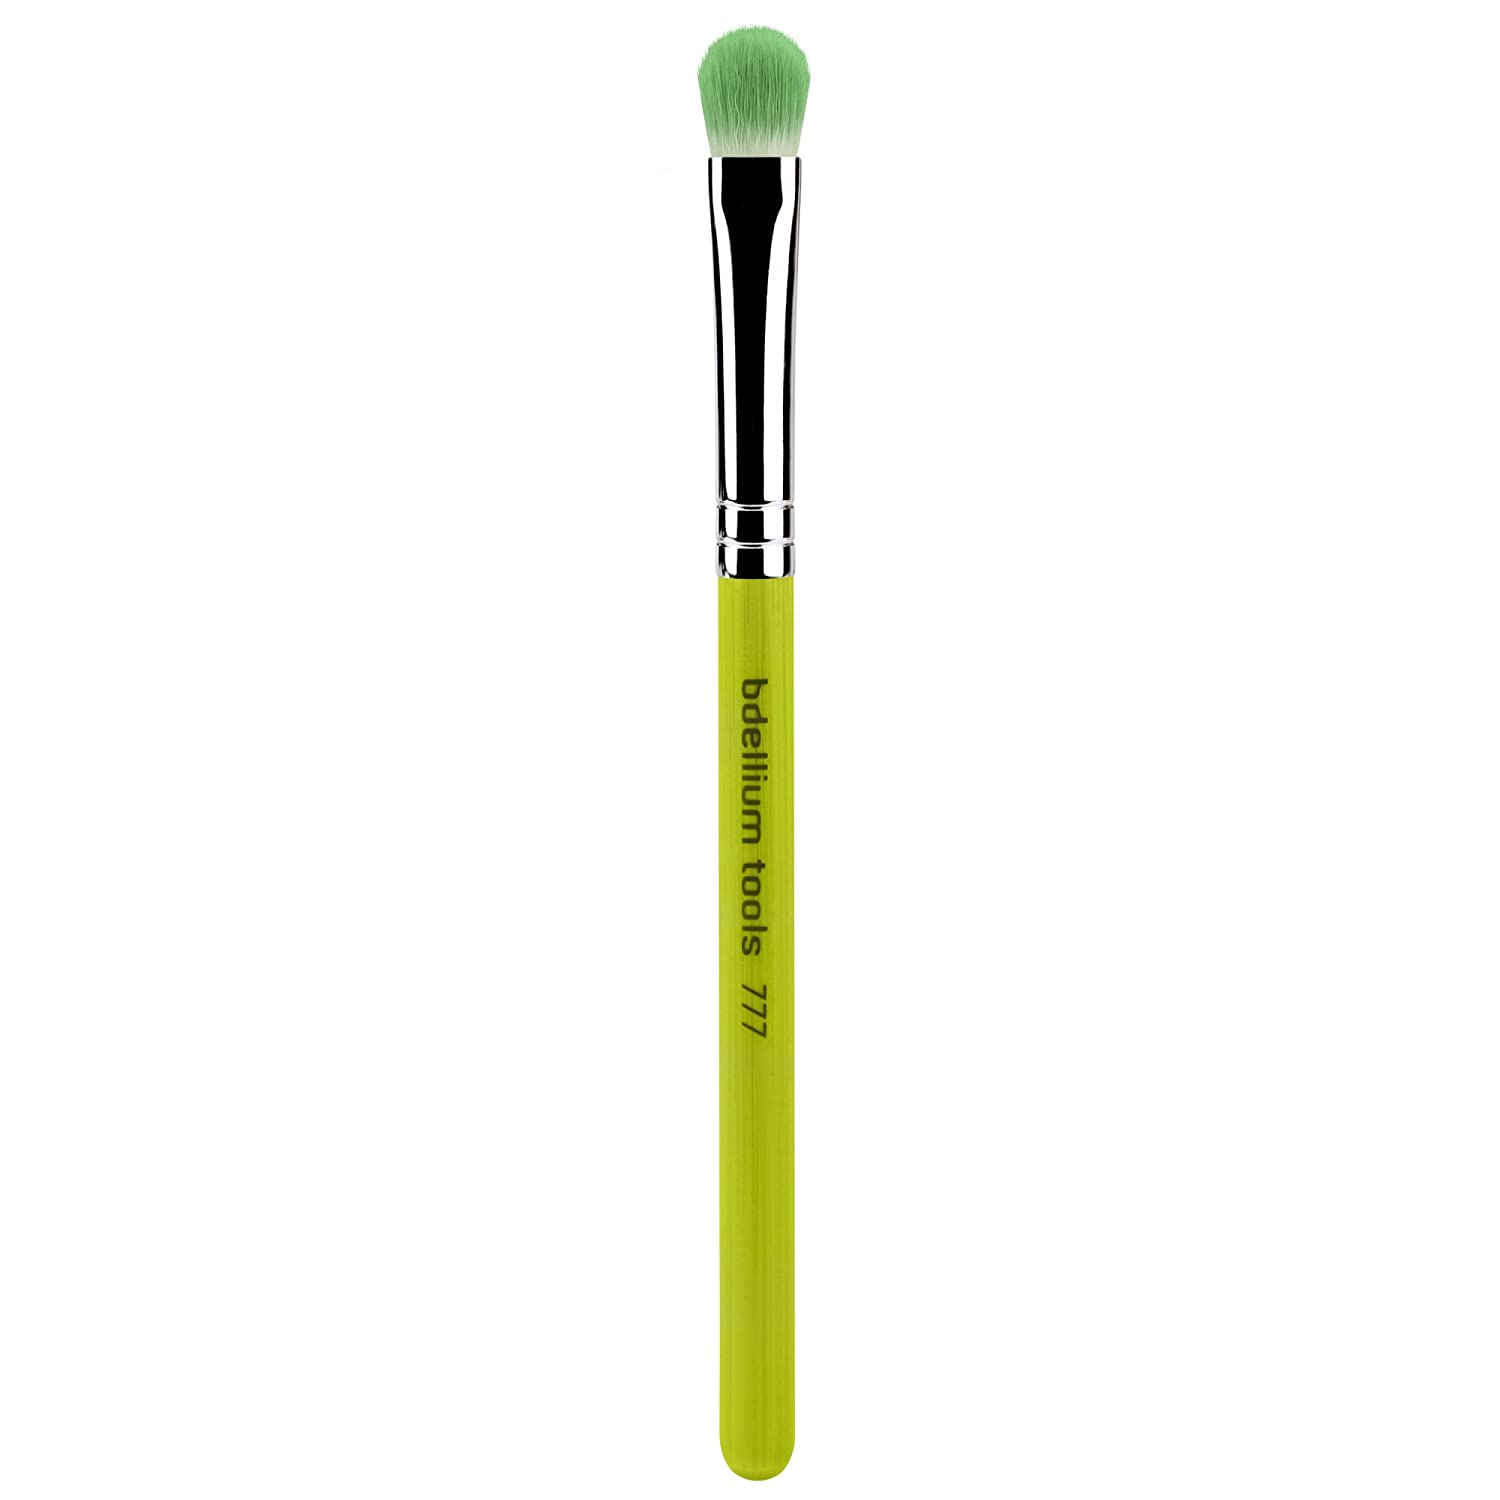 Bdellium Tools Professional Makeup Brush Green Bambu Series Shadow 777, 1 Count BD-BAMBU-777